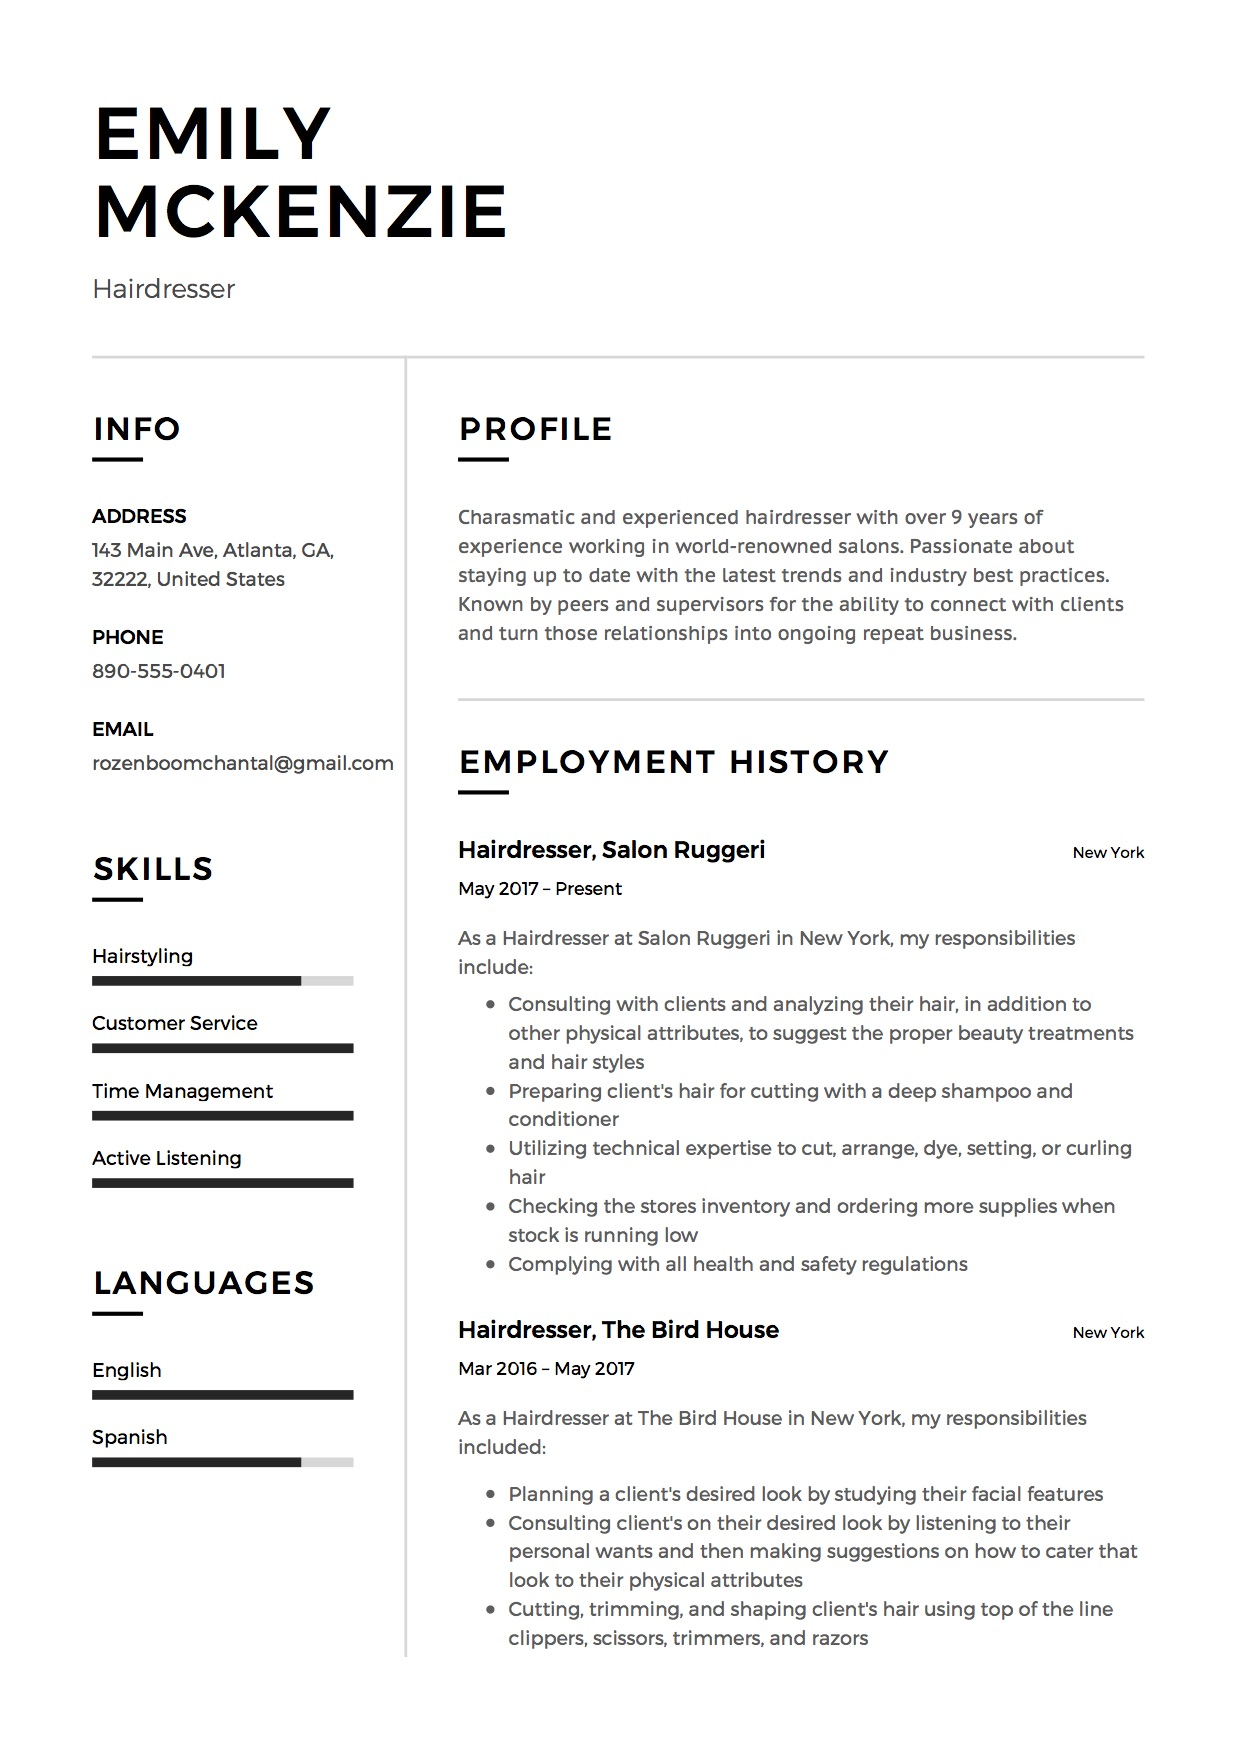 Hairdressing Resume Sample Australia Nice Hairdresser Resume Samples Pictures Gt Gt Hairstylist